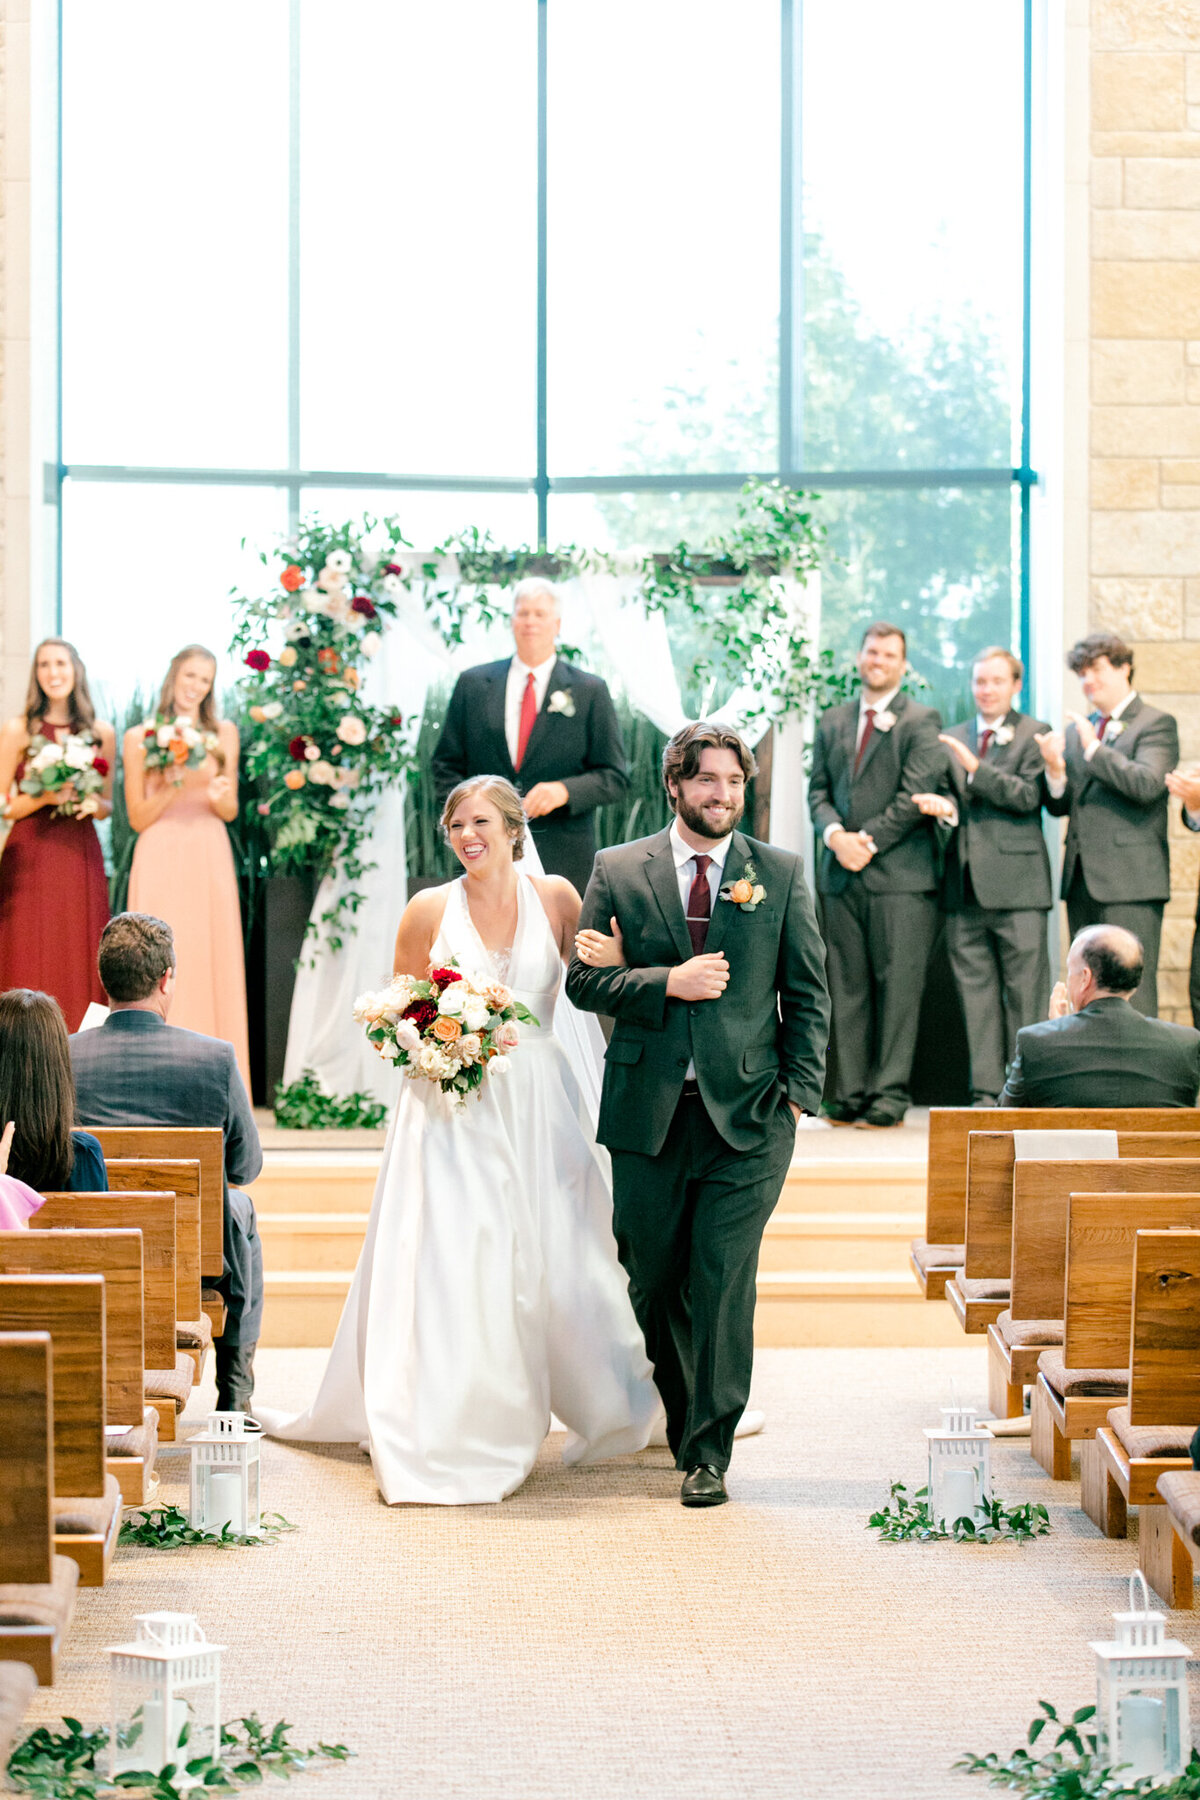 Kaylee & Michael's Wedding at Watermark Community Church | Dallas Wedding Photographer | Sami Kathryn Photography-116